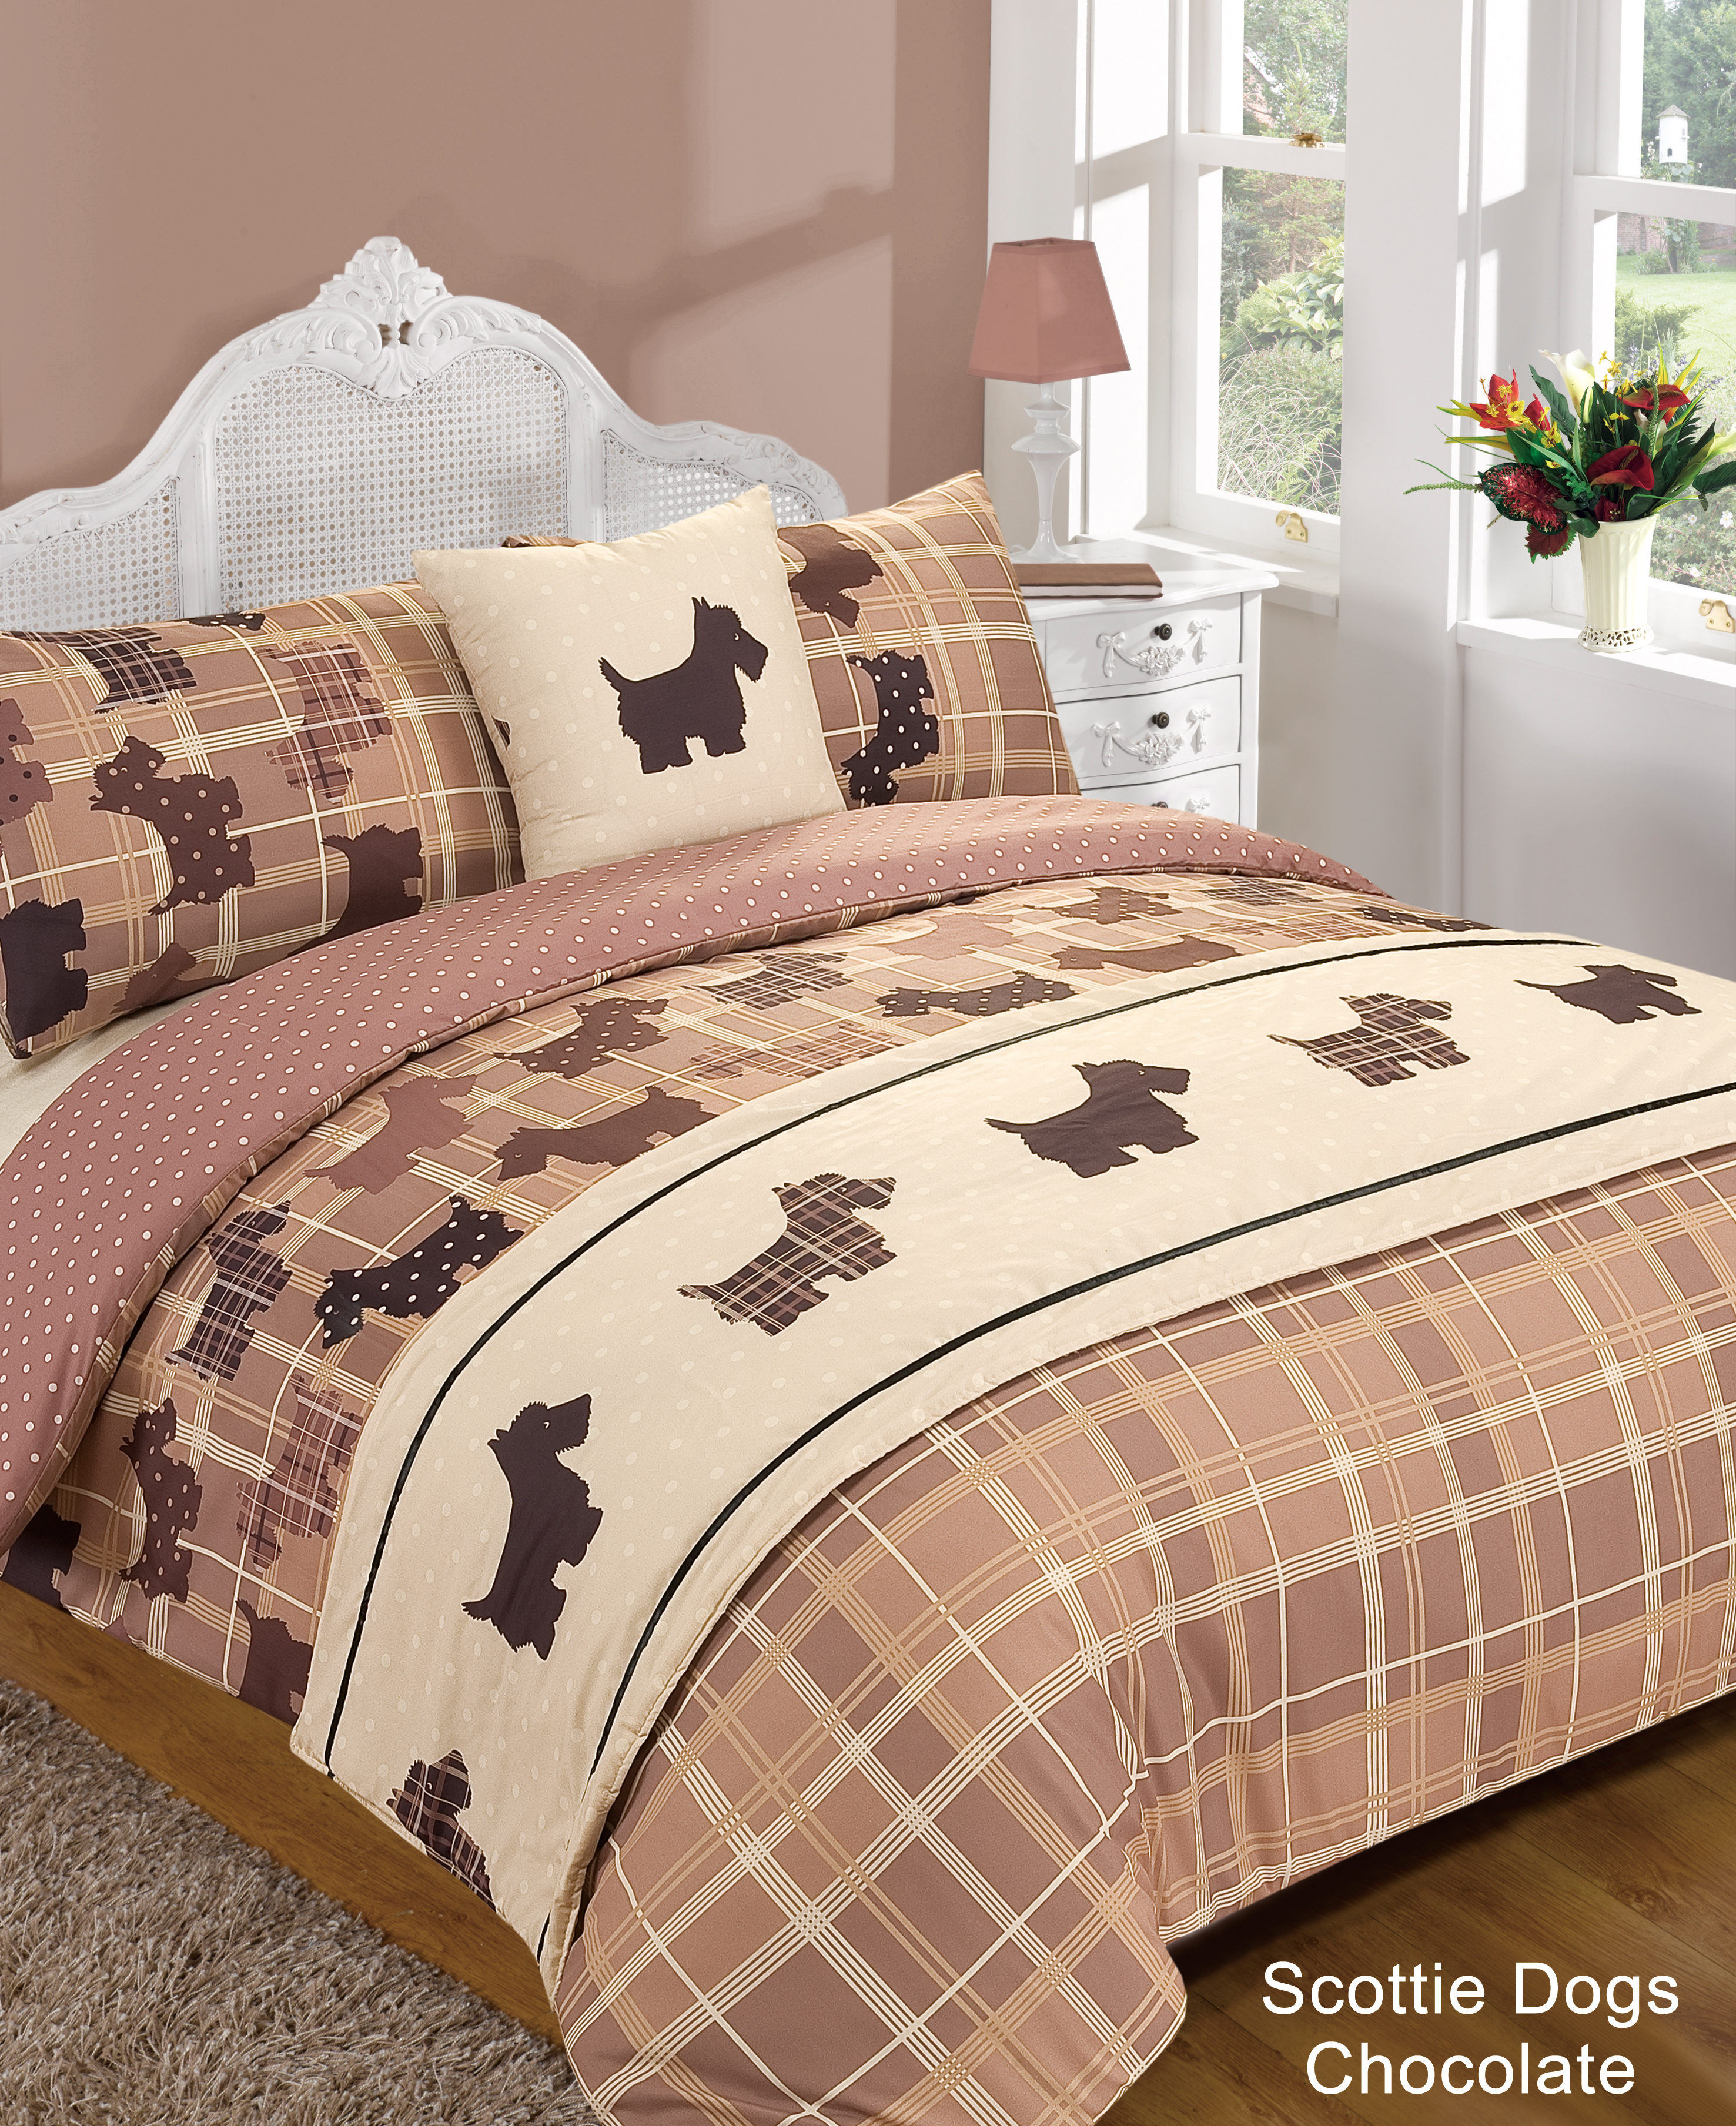 Bed cover in bedding ebay - 5 Piece Bed In Bag Duvet Quilt Cover